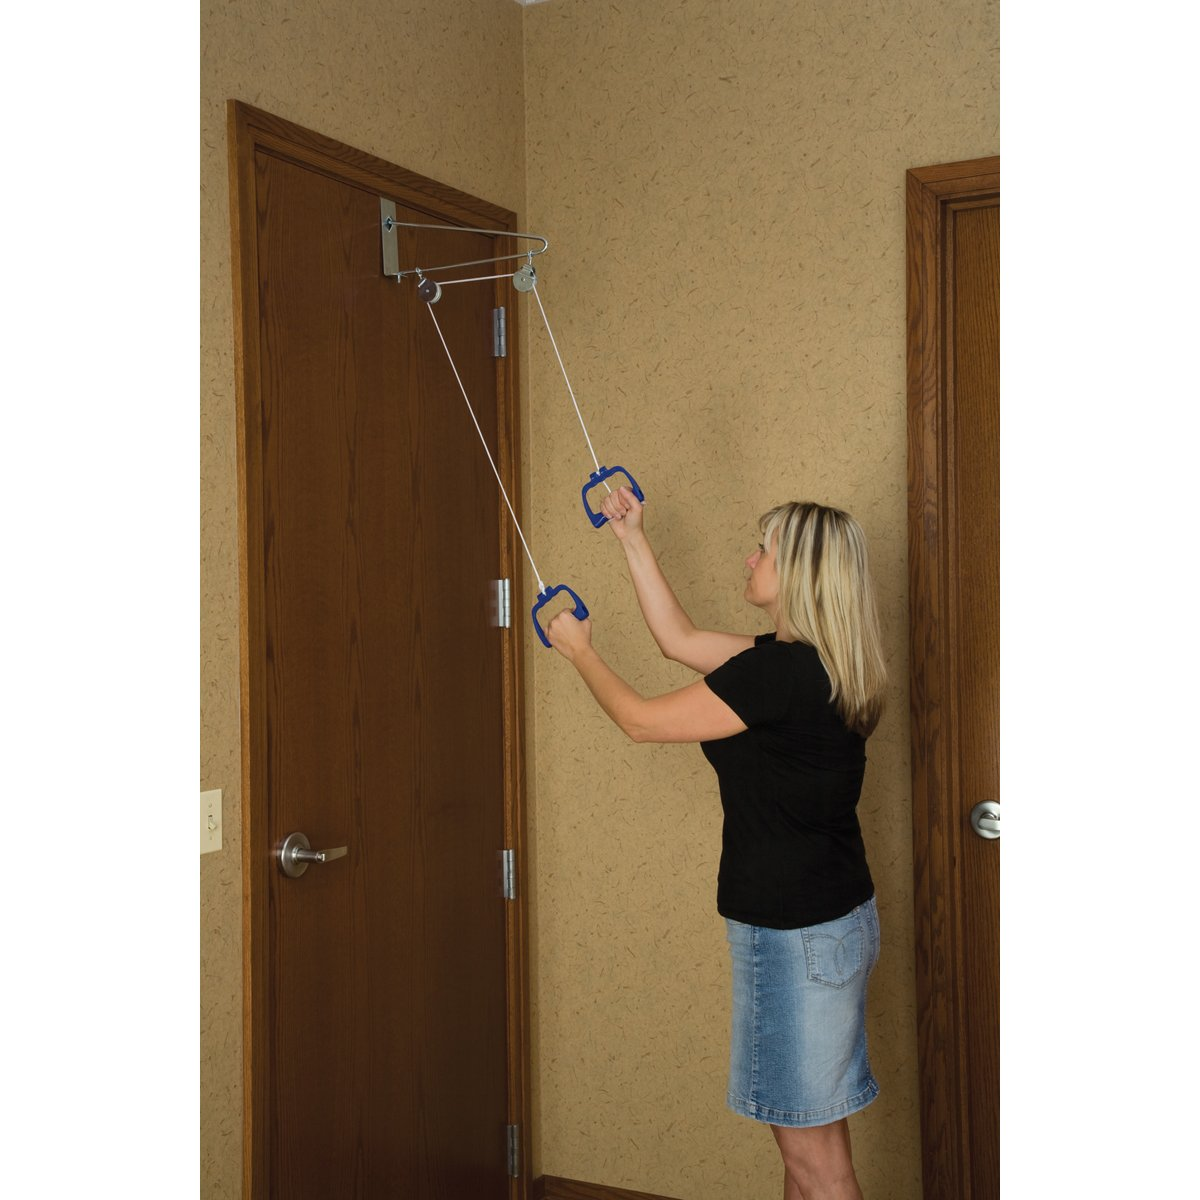 Amazon.com: DMI Shoulder Pulley For Physical Therapy, Door Pulley, White:  Health U0026 Personal Care